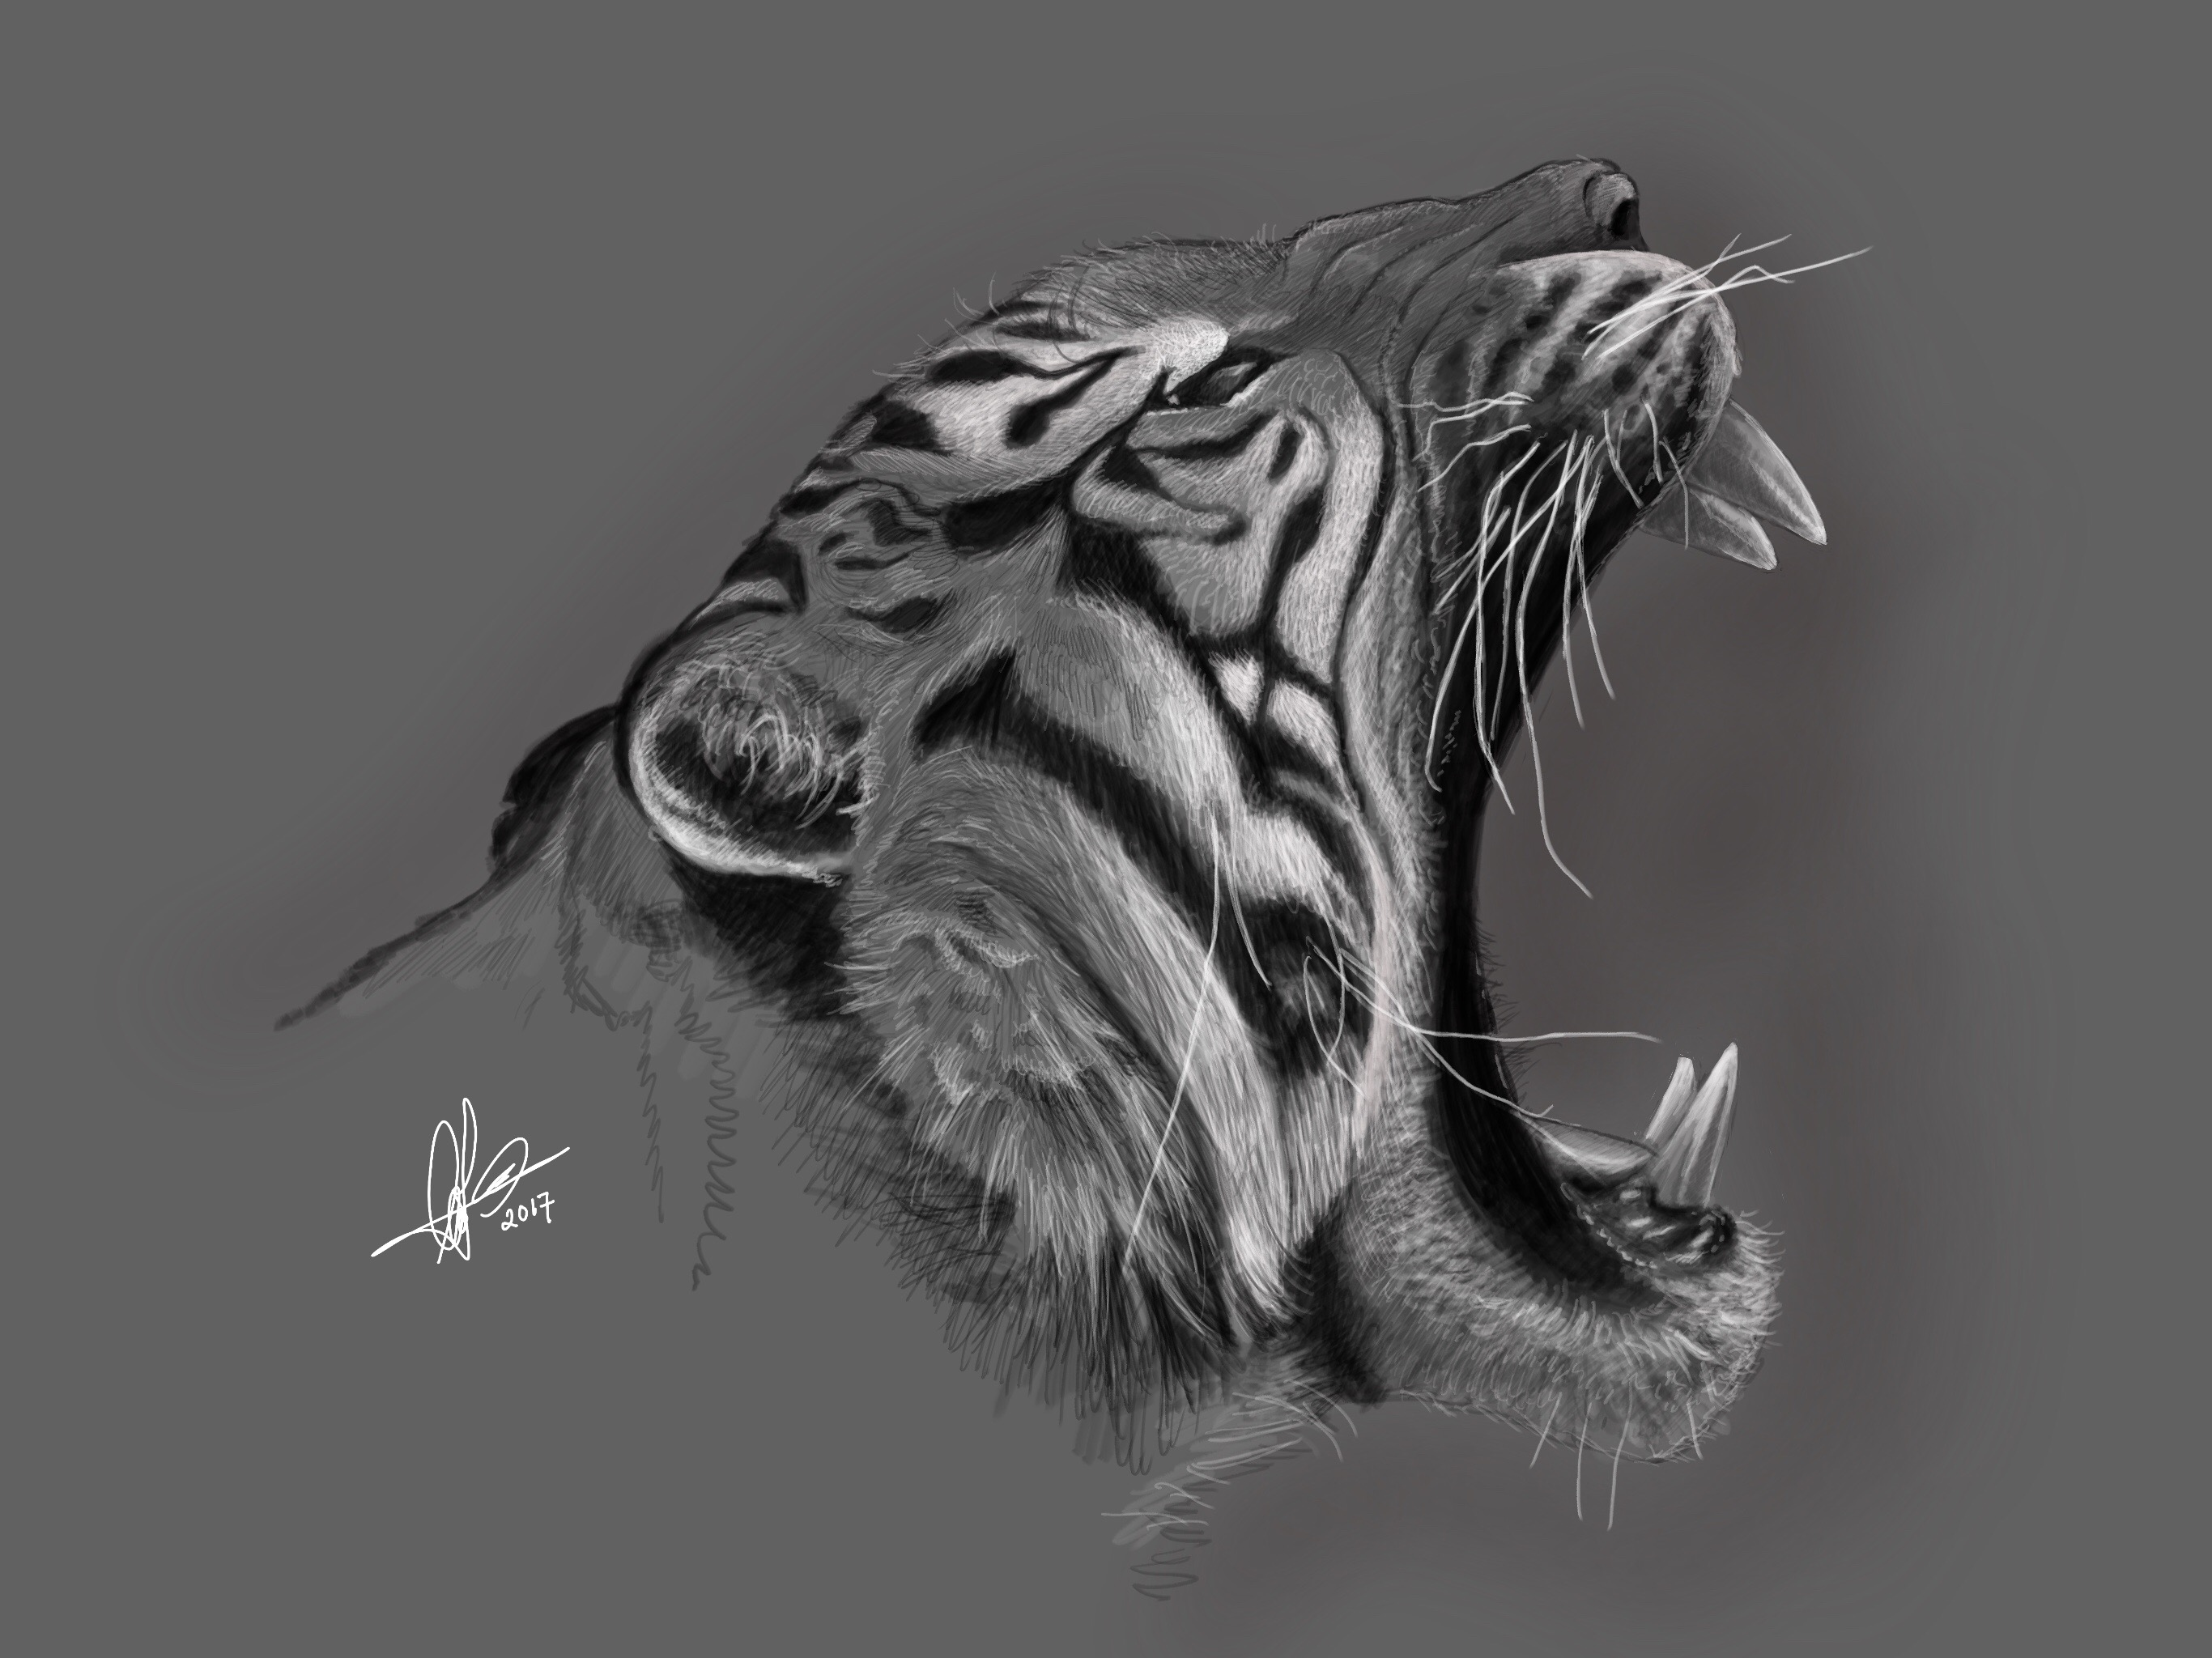 Tiger. Digital art